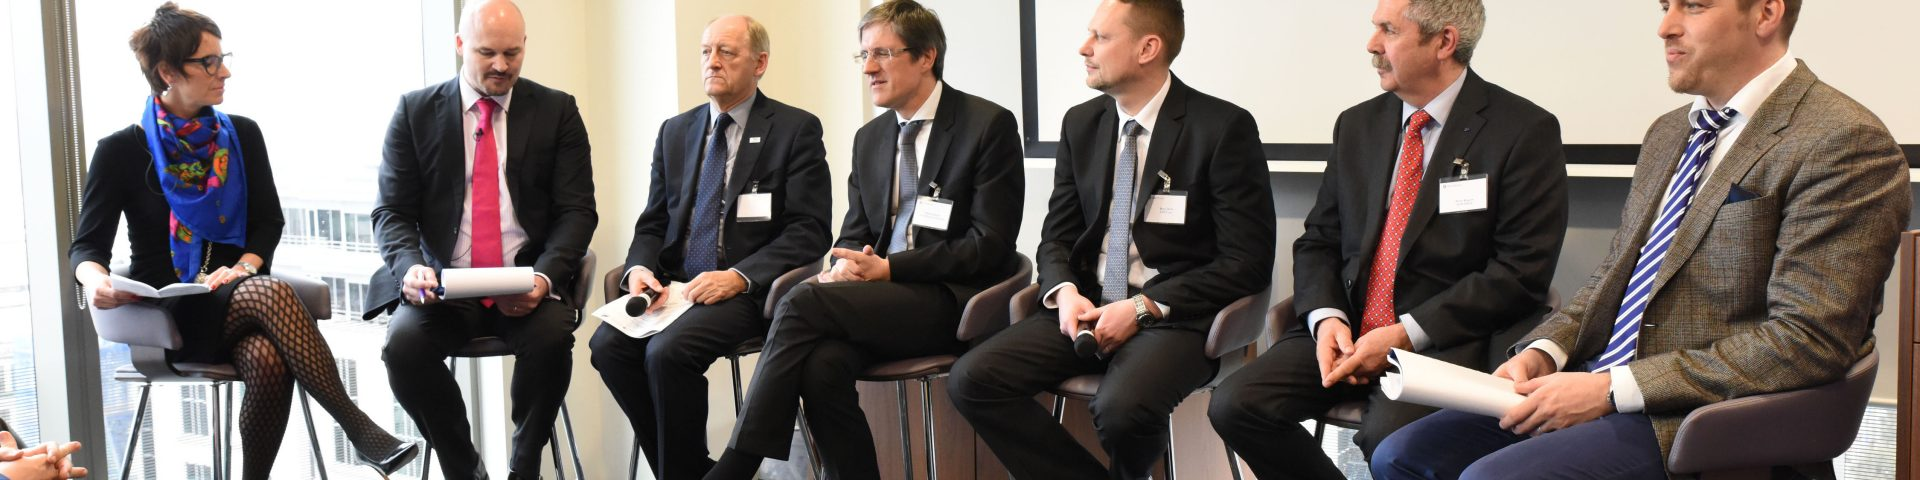 Hear about Automotive opportunity from our Expert panel